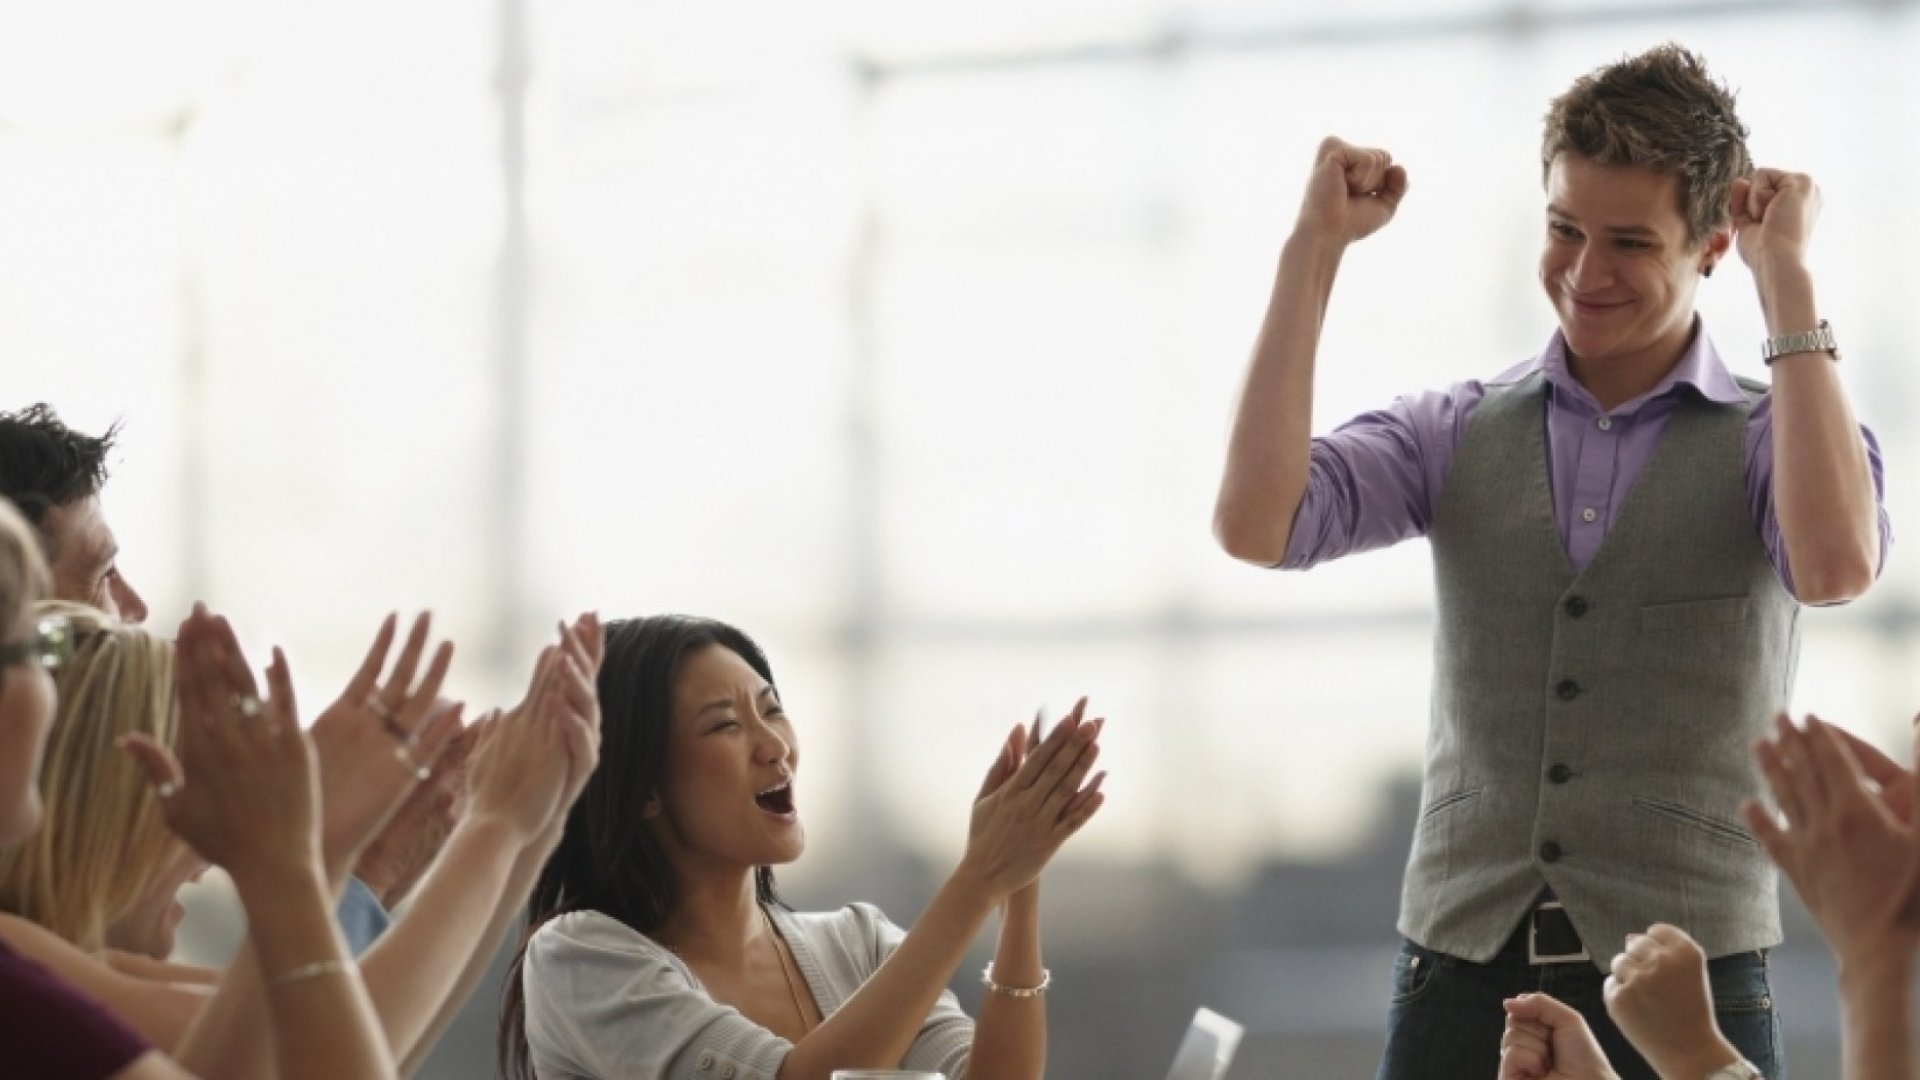 5 Reasons You Shouldn't Praise Employees for Doing Their Jobs